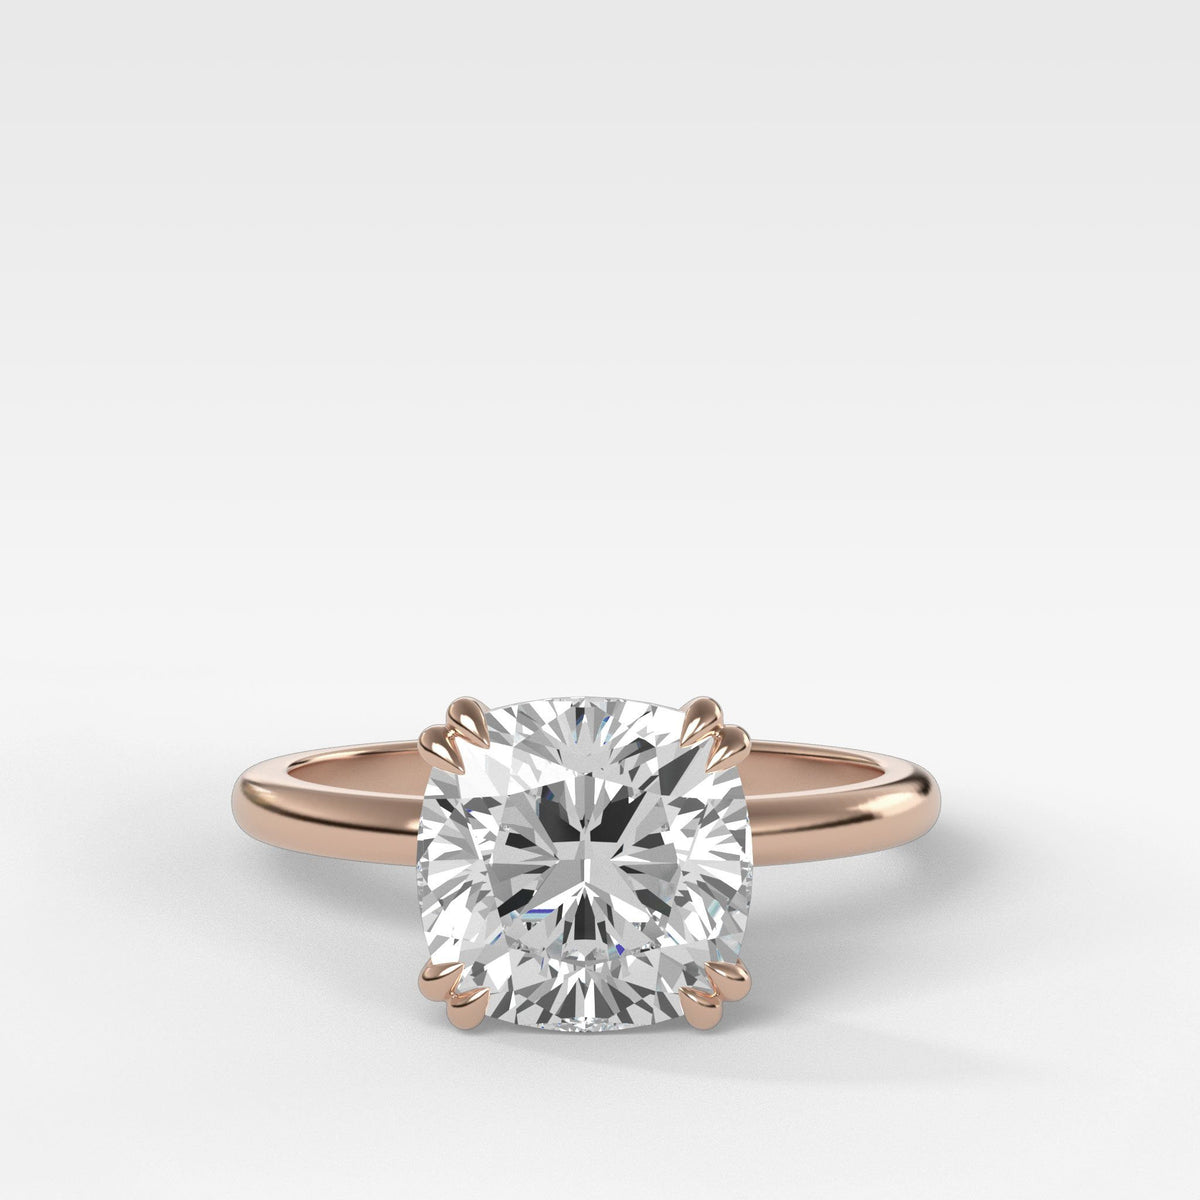 Signature Cathedral Solitaire With Cushion Cut in Rose Gold by Good Stone